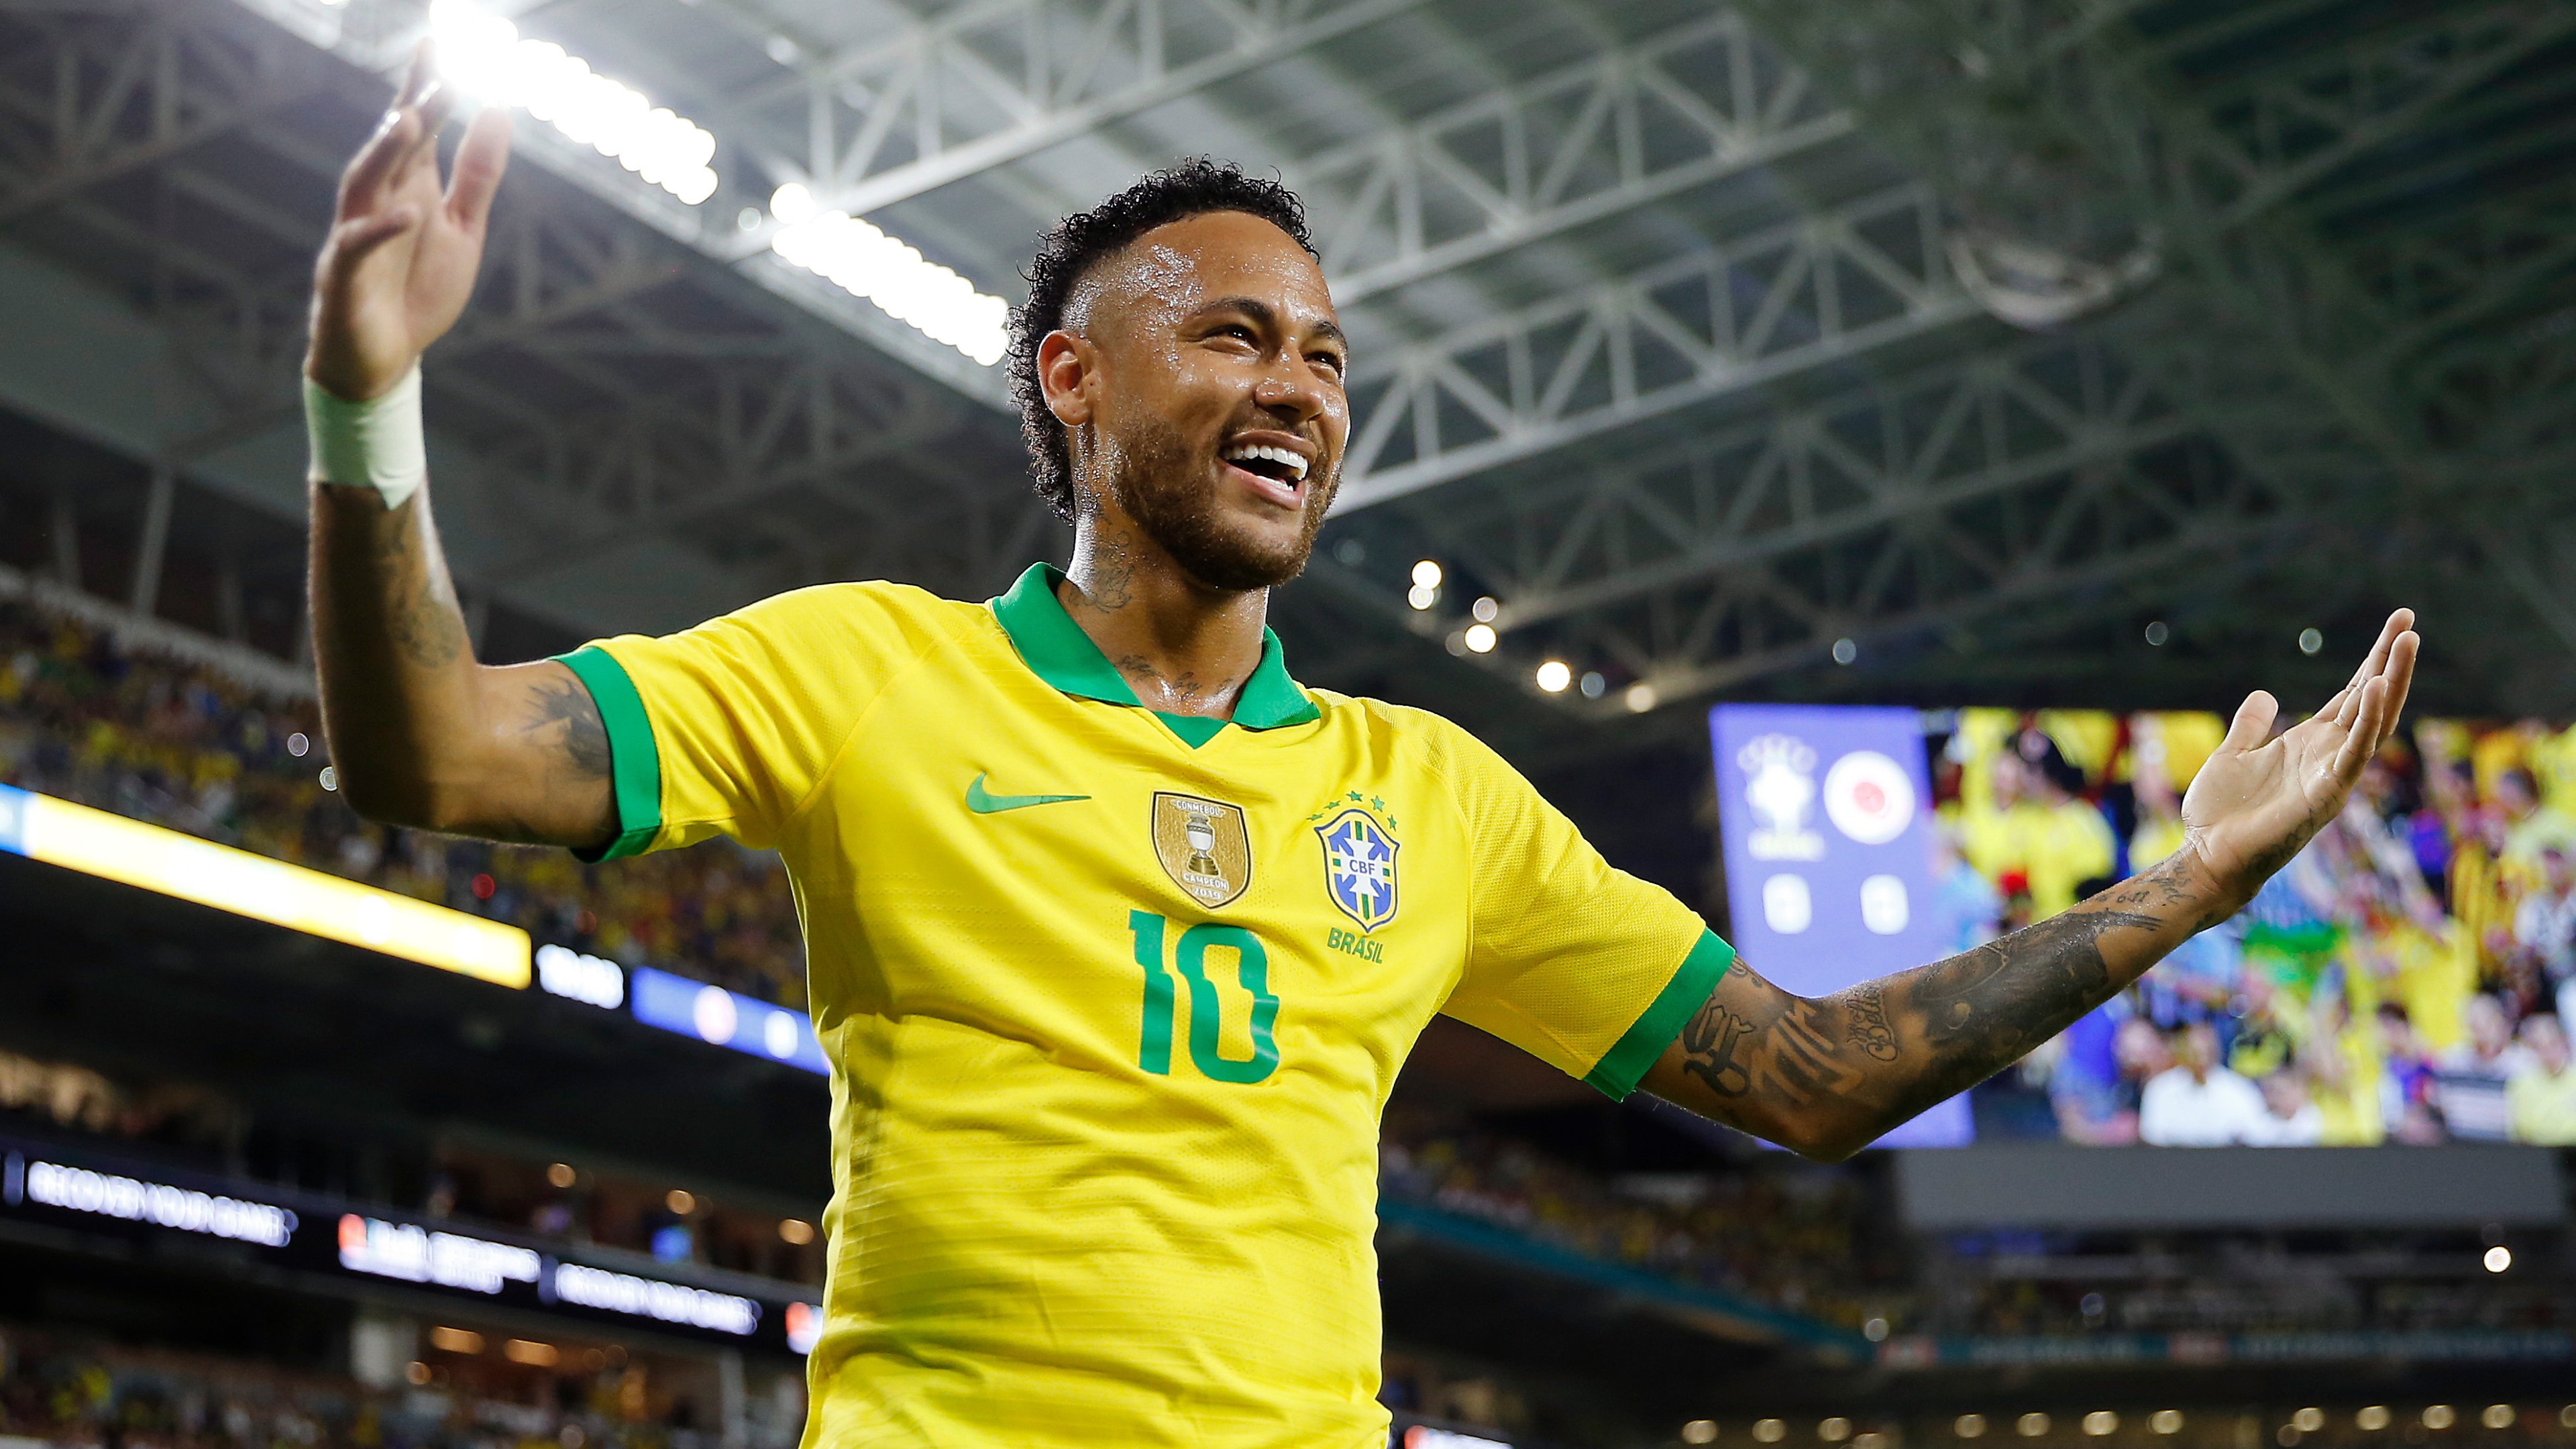 Neymar scores for Brazil in first match for three months